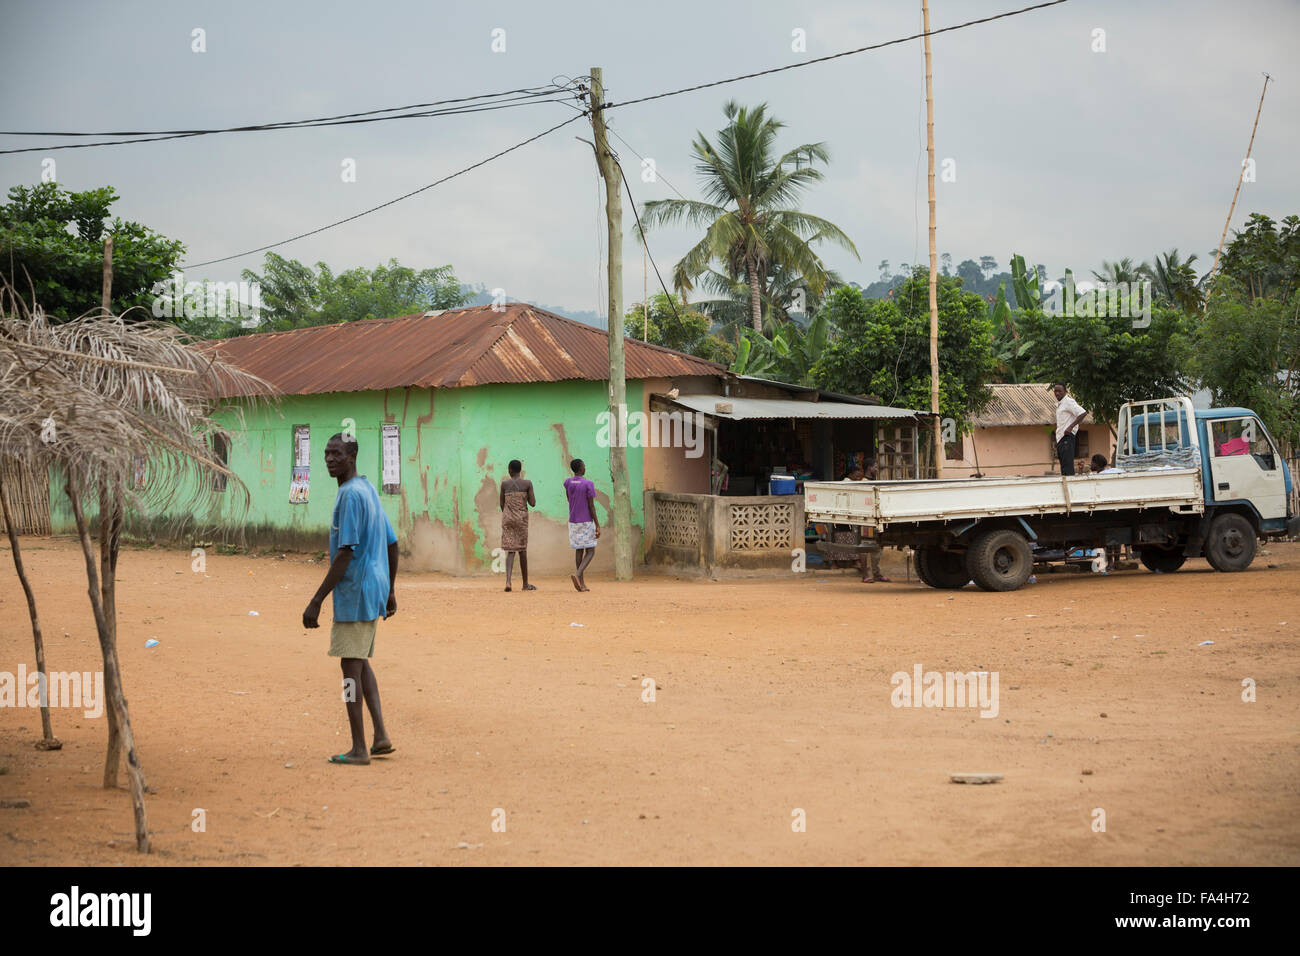 Neighborhood scene - Fotobi village, Southeast Ghana. Stock Photo